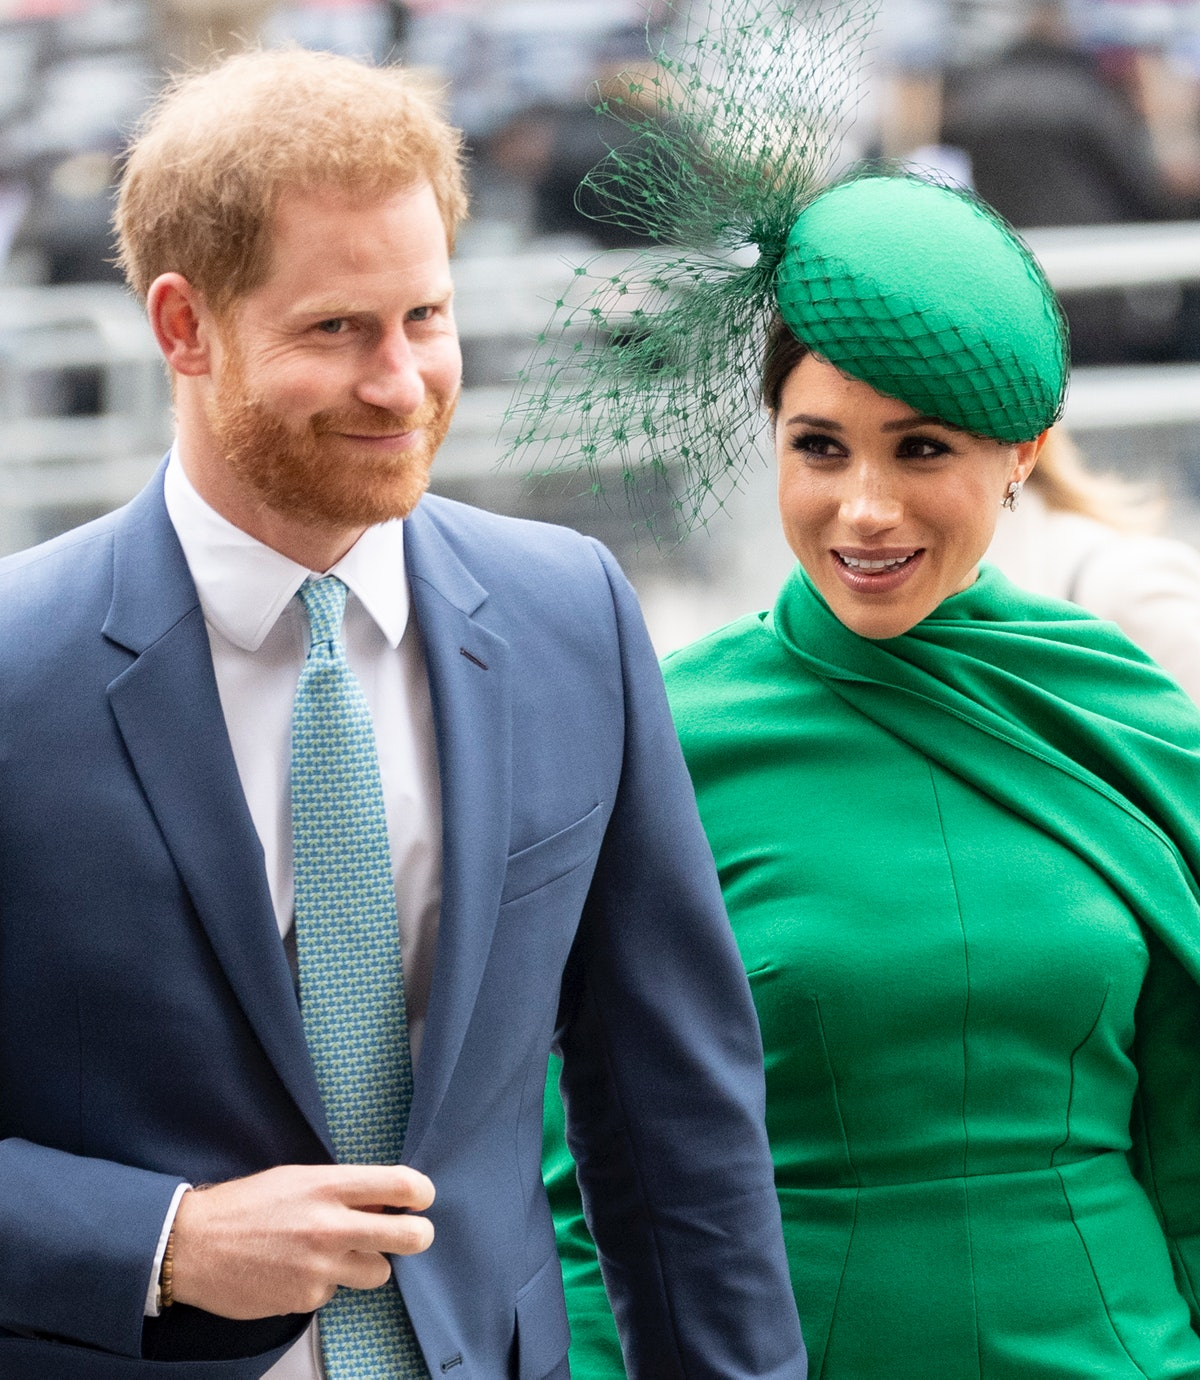 Prince Harry and Meghan Markle step out hand in hand.